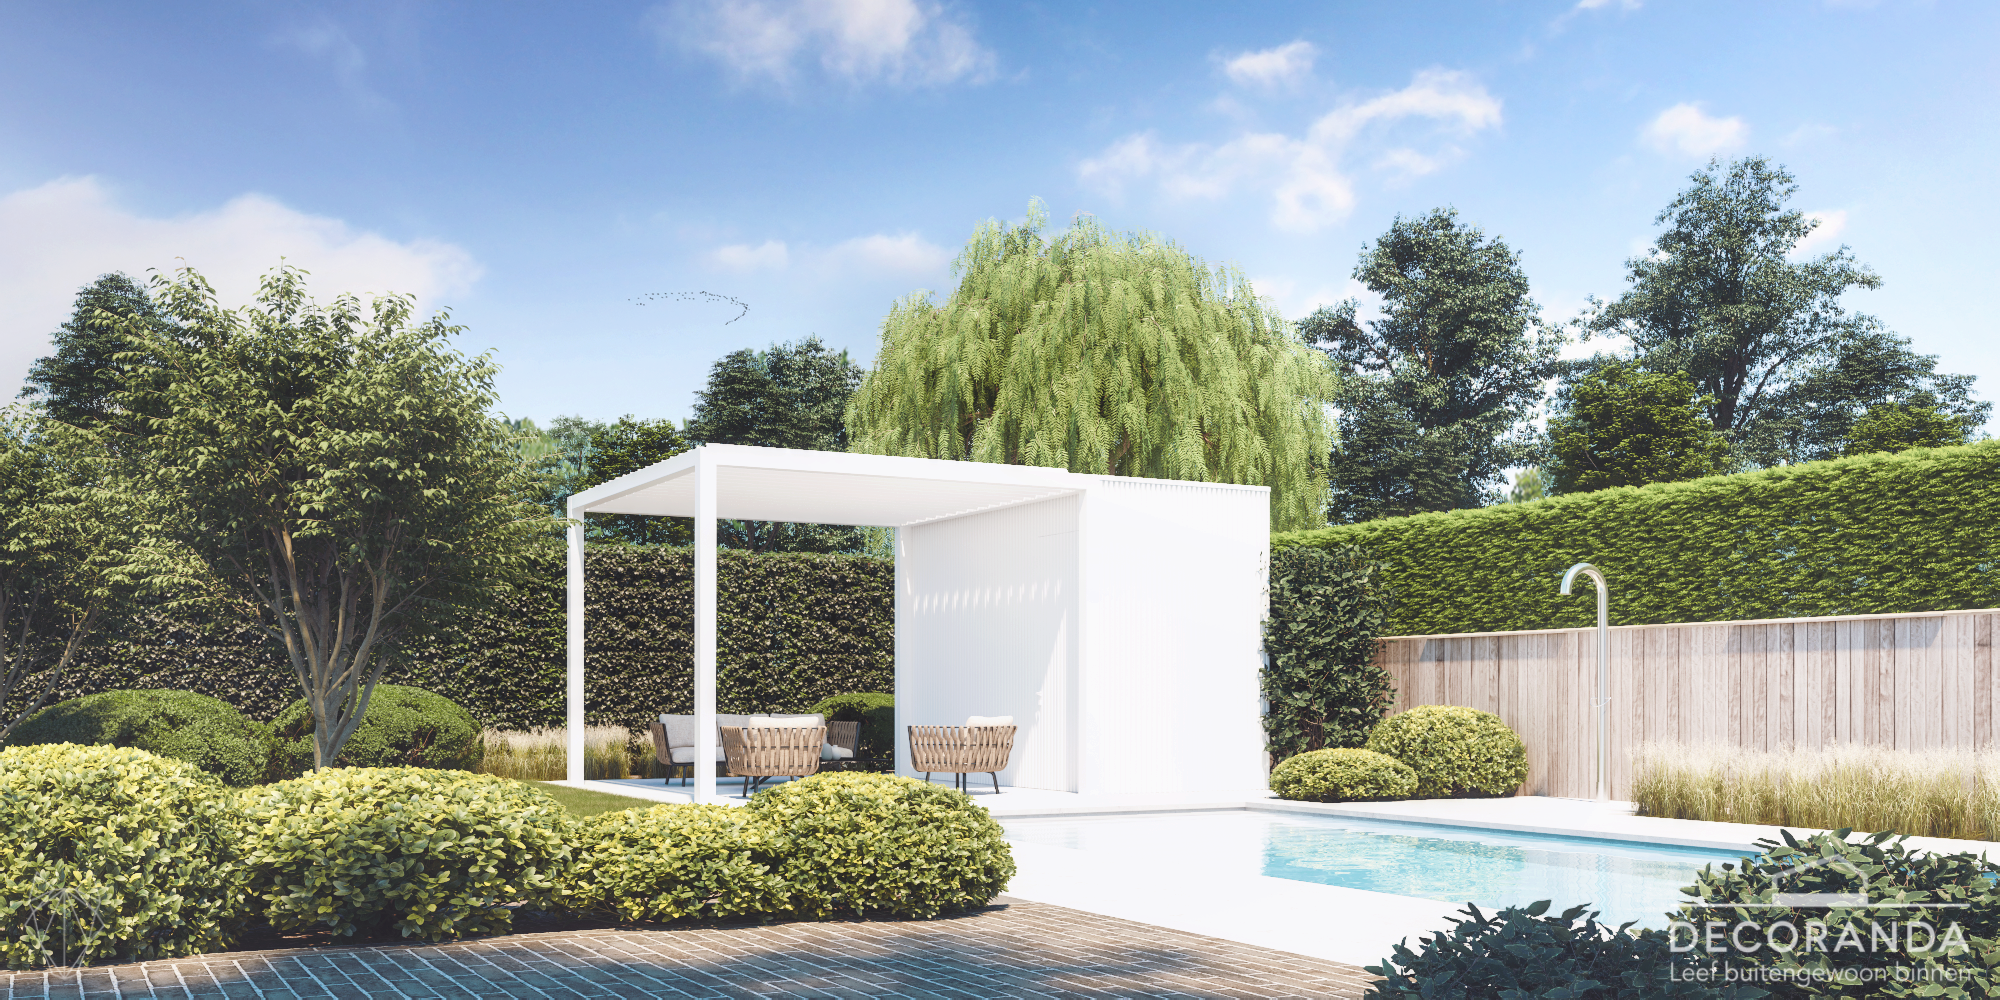 279 Decoranda Standaard poolhouse modell